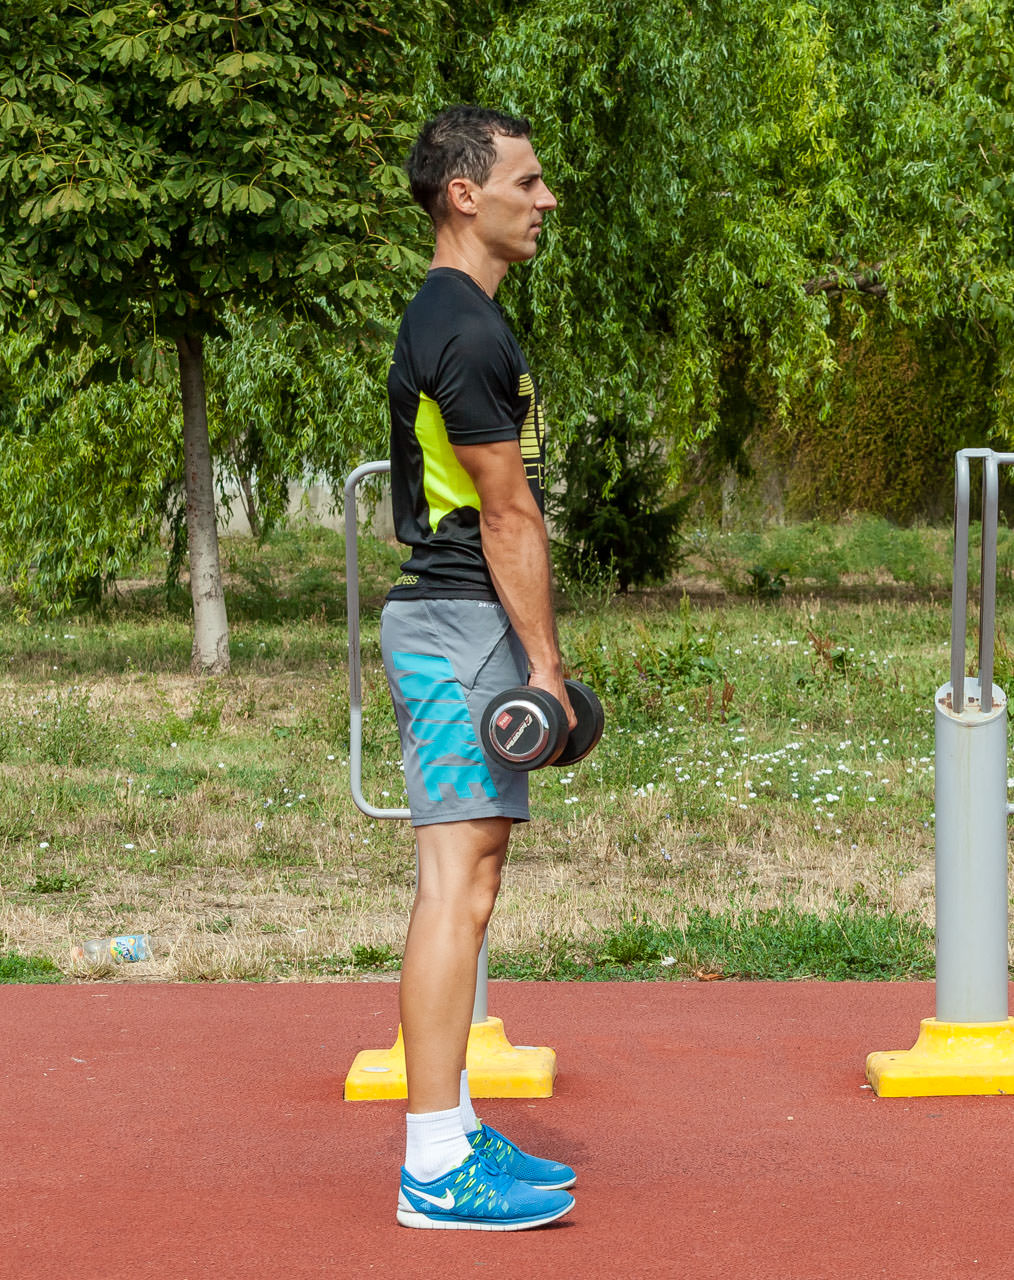 Dumbbell Romanian Deadlift frame #4